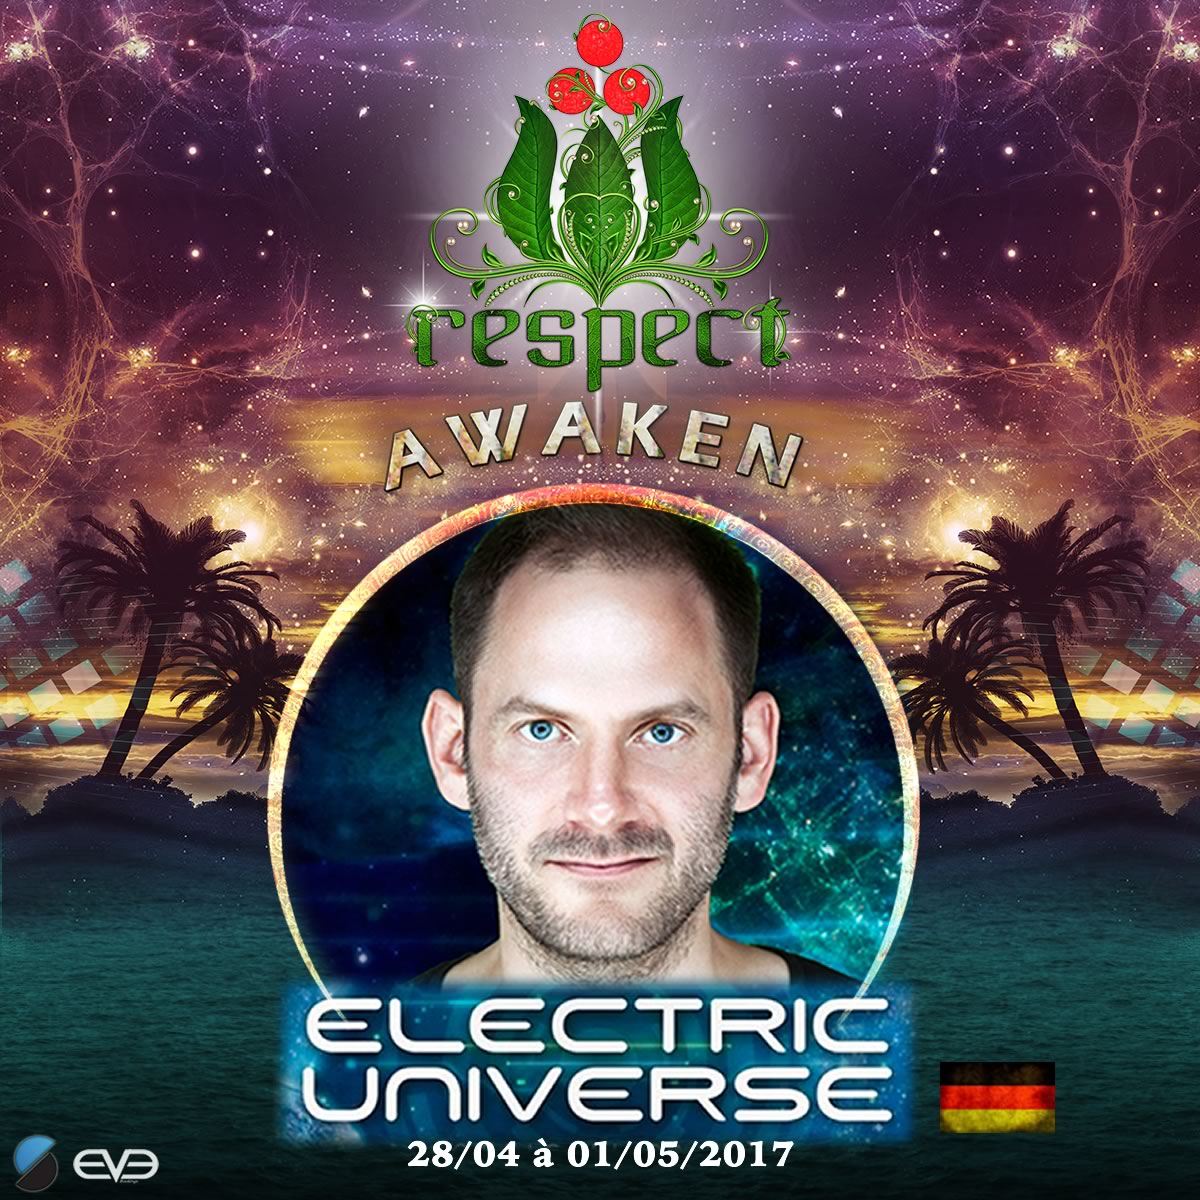 Electric Universe @ Respect Awaken 2017